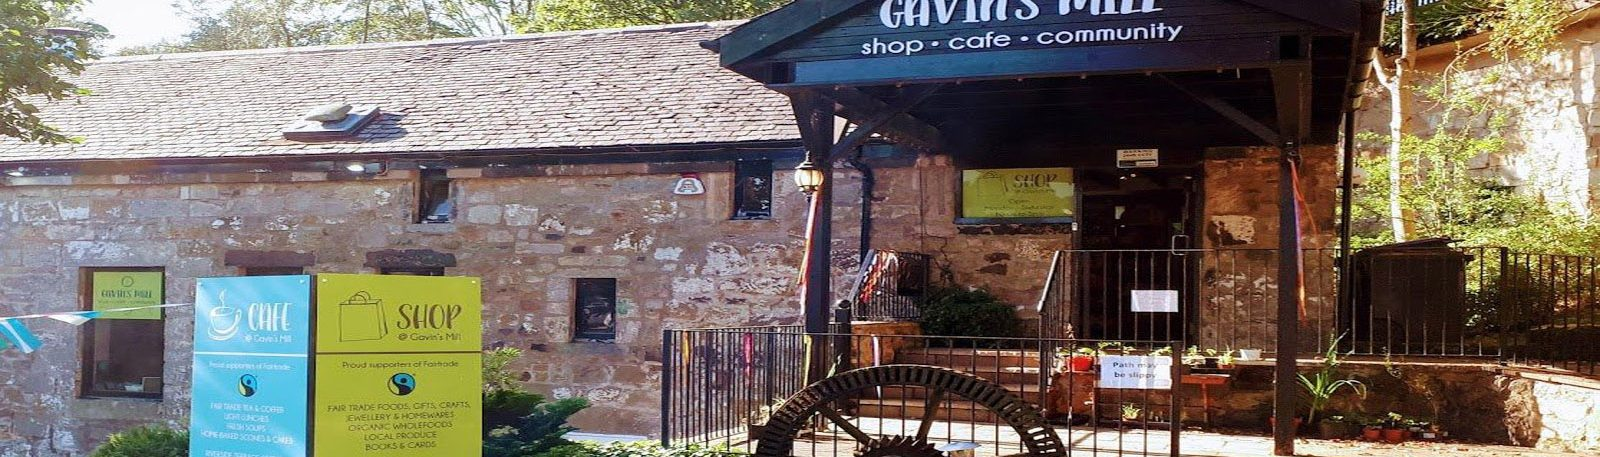 News Gavin's Mill Community Ownership